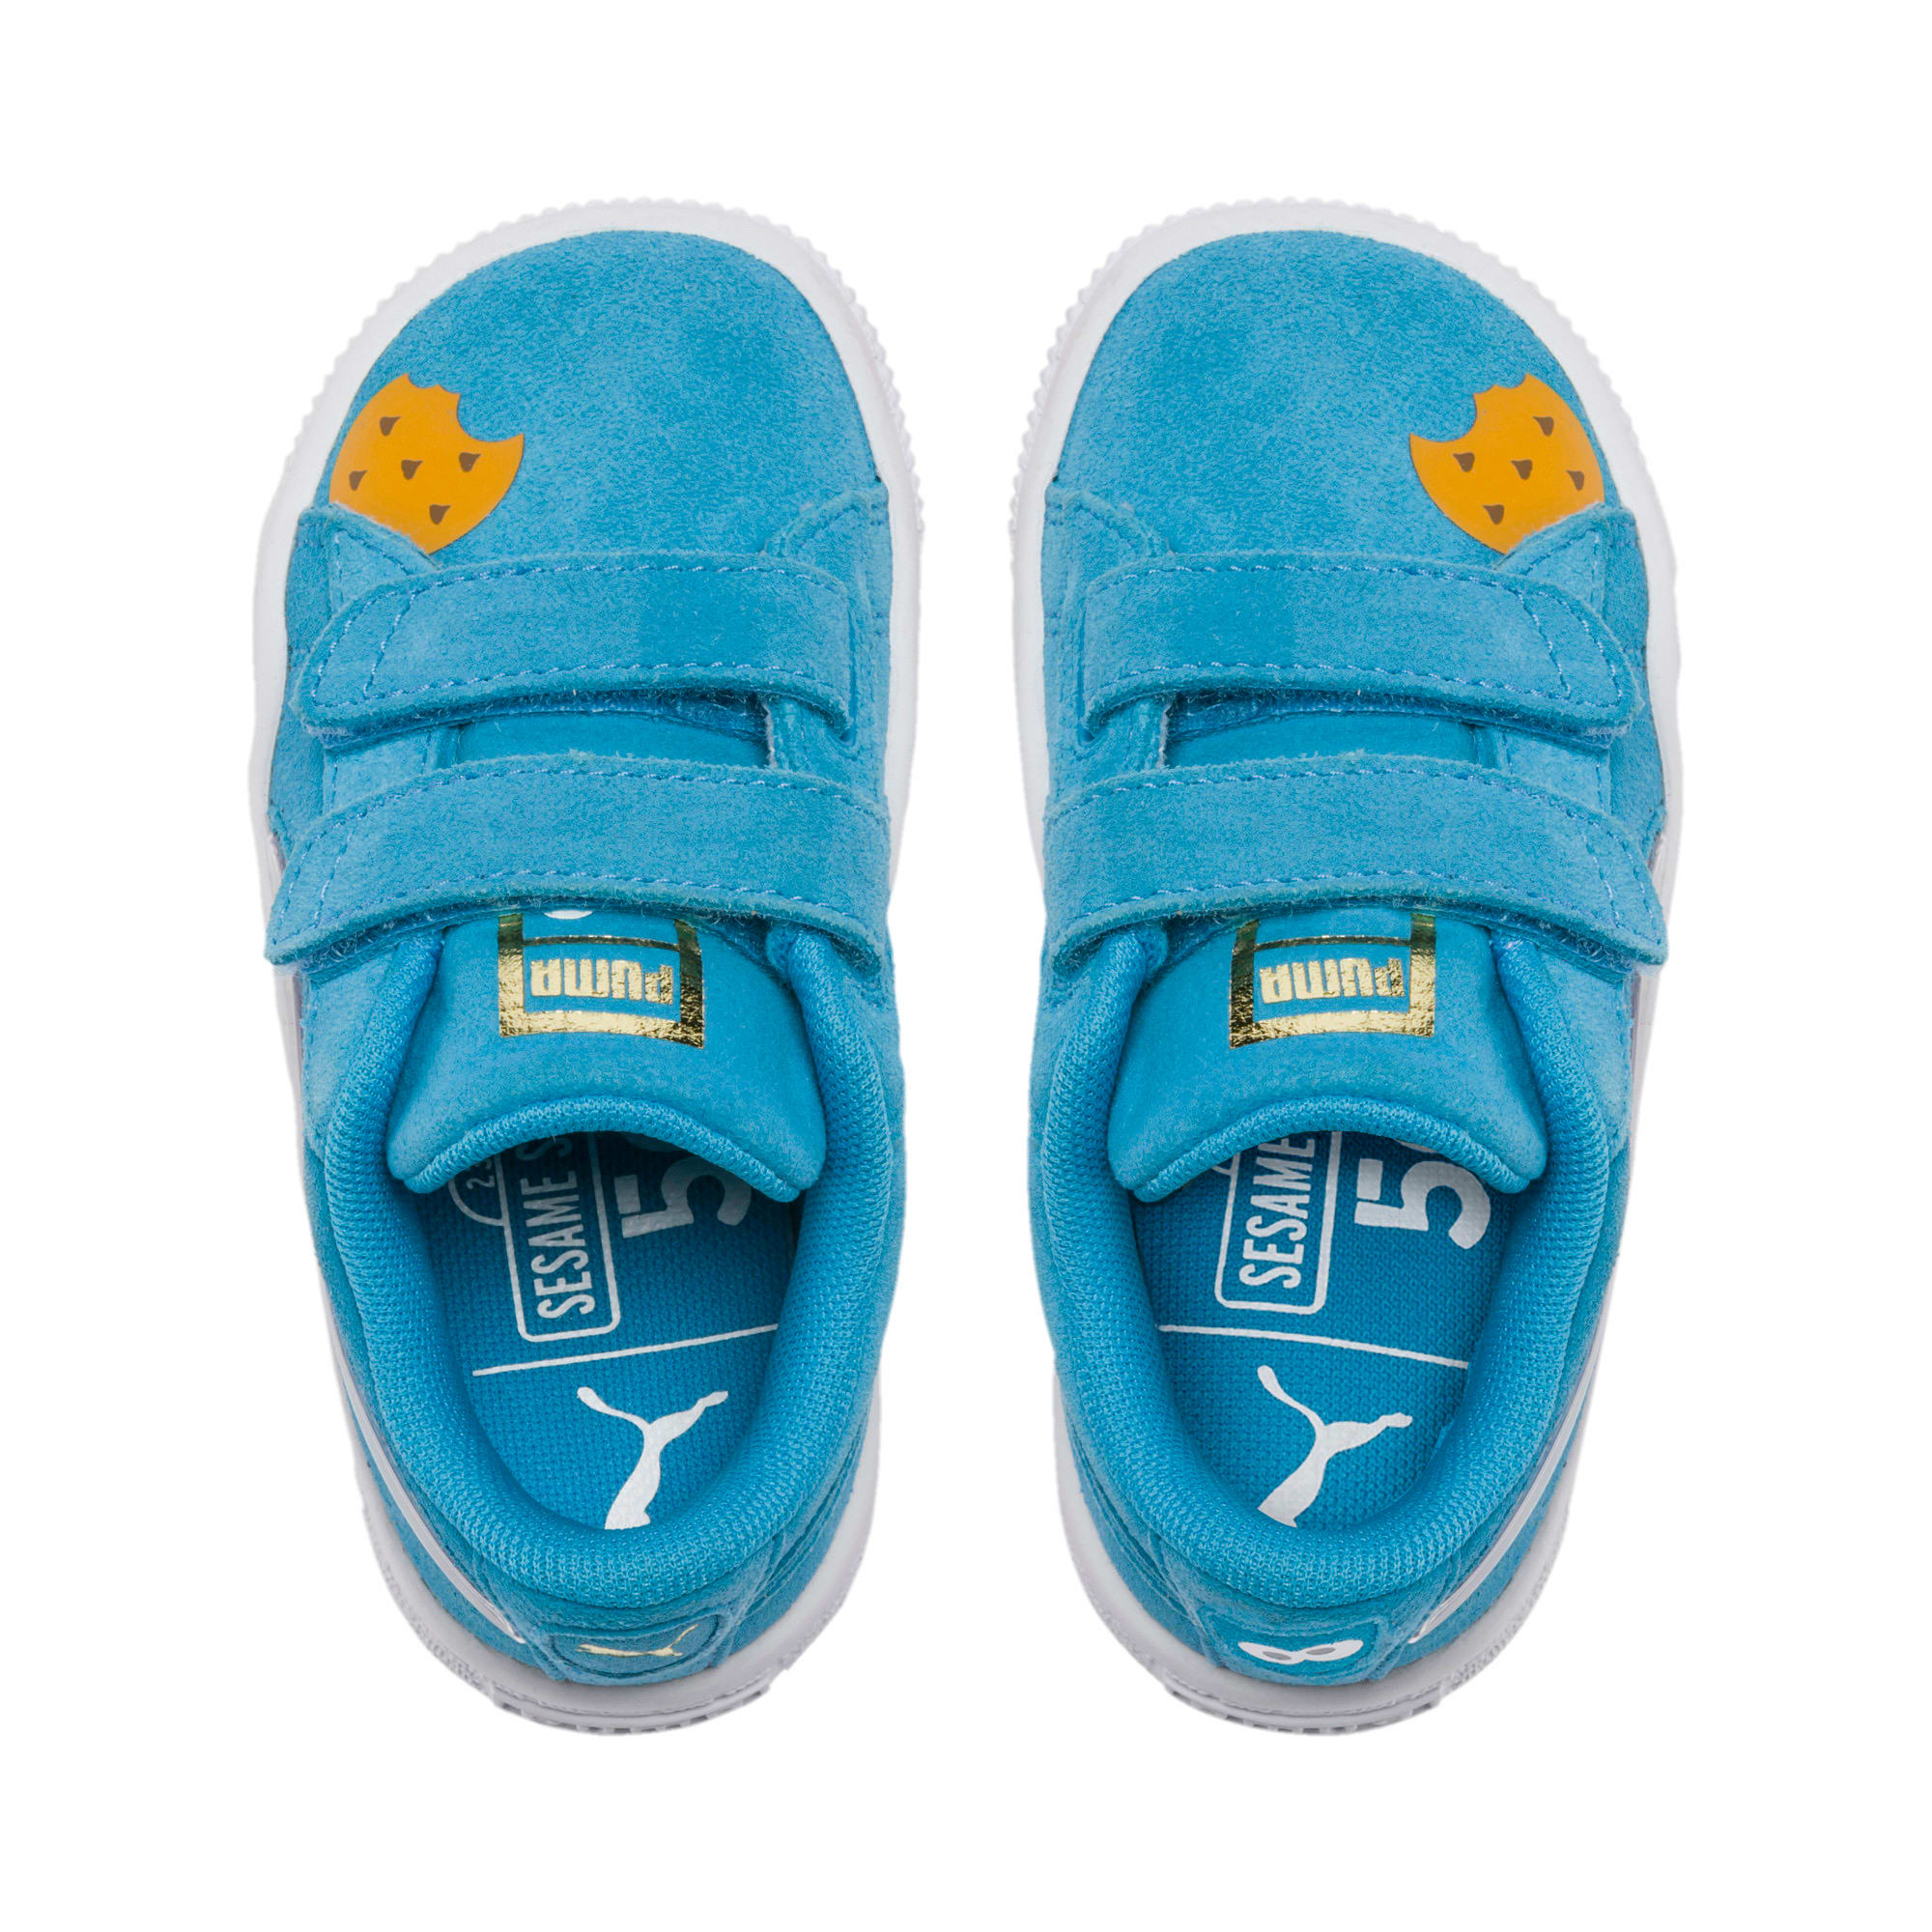 Thumbnail 6 of Sesame Street 50 Suede Statement Babies' Trainers, Bleu Azur-Puma White, medium